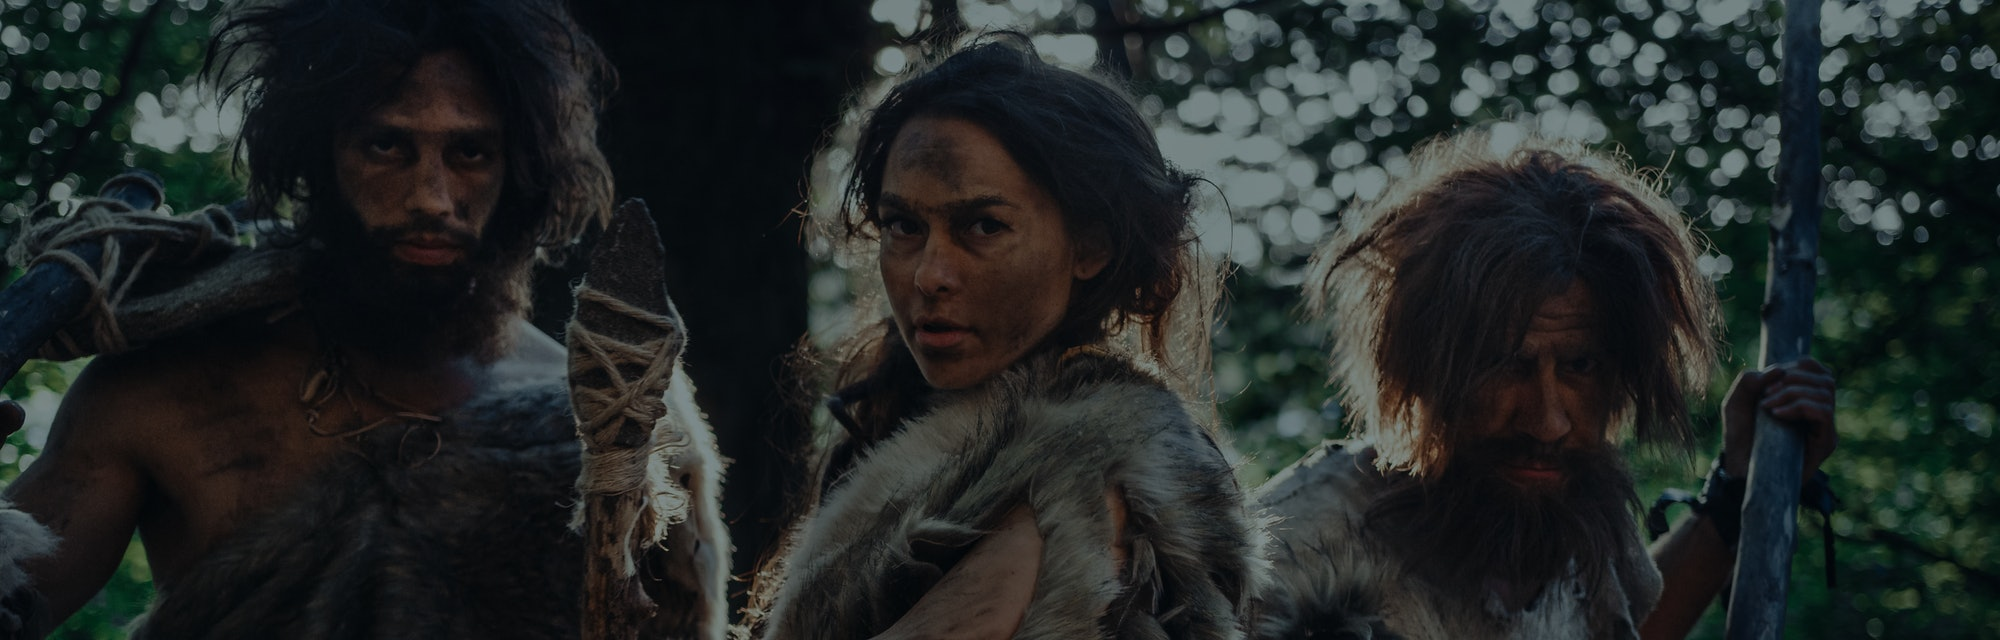 Female Leader and Two Primeval Cavemen Warriors Threat Enemy with Stone Tipped Spear, Scream, Defend...